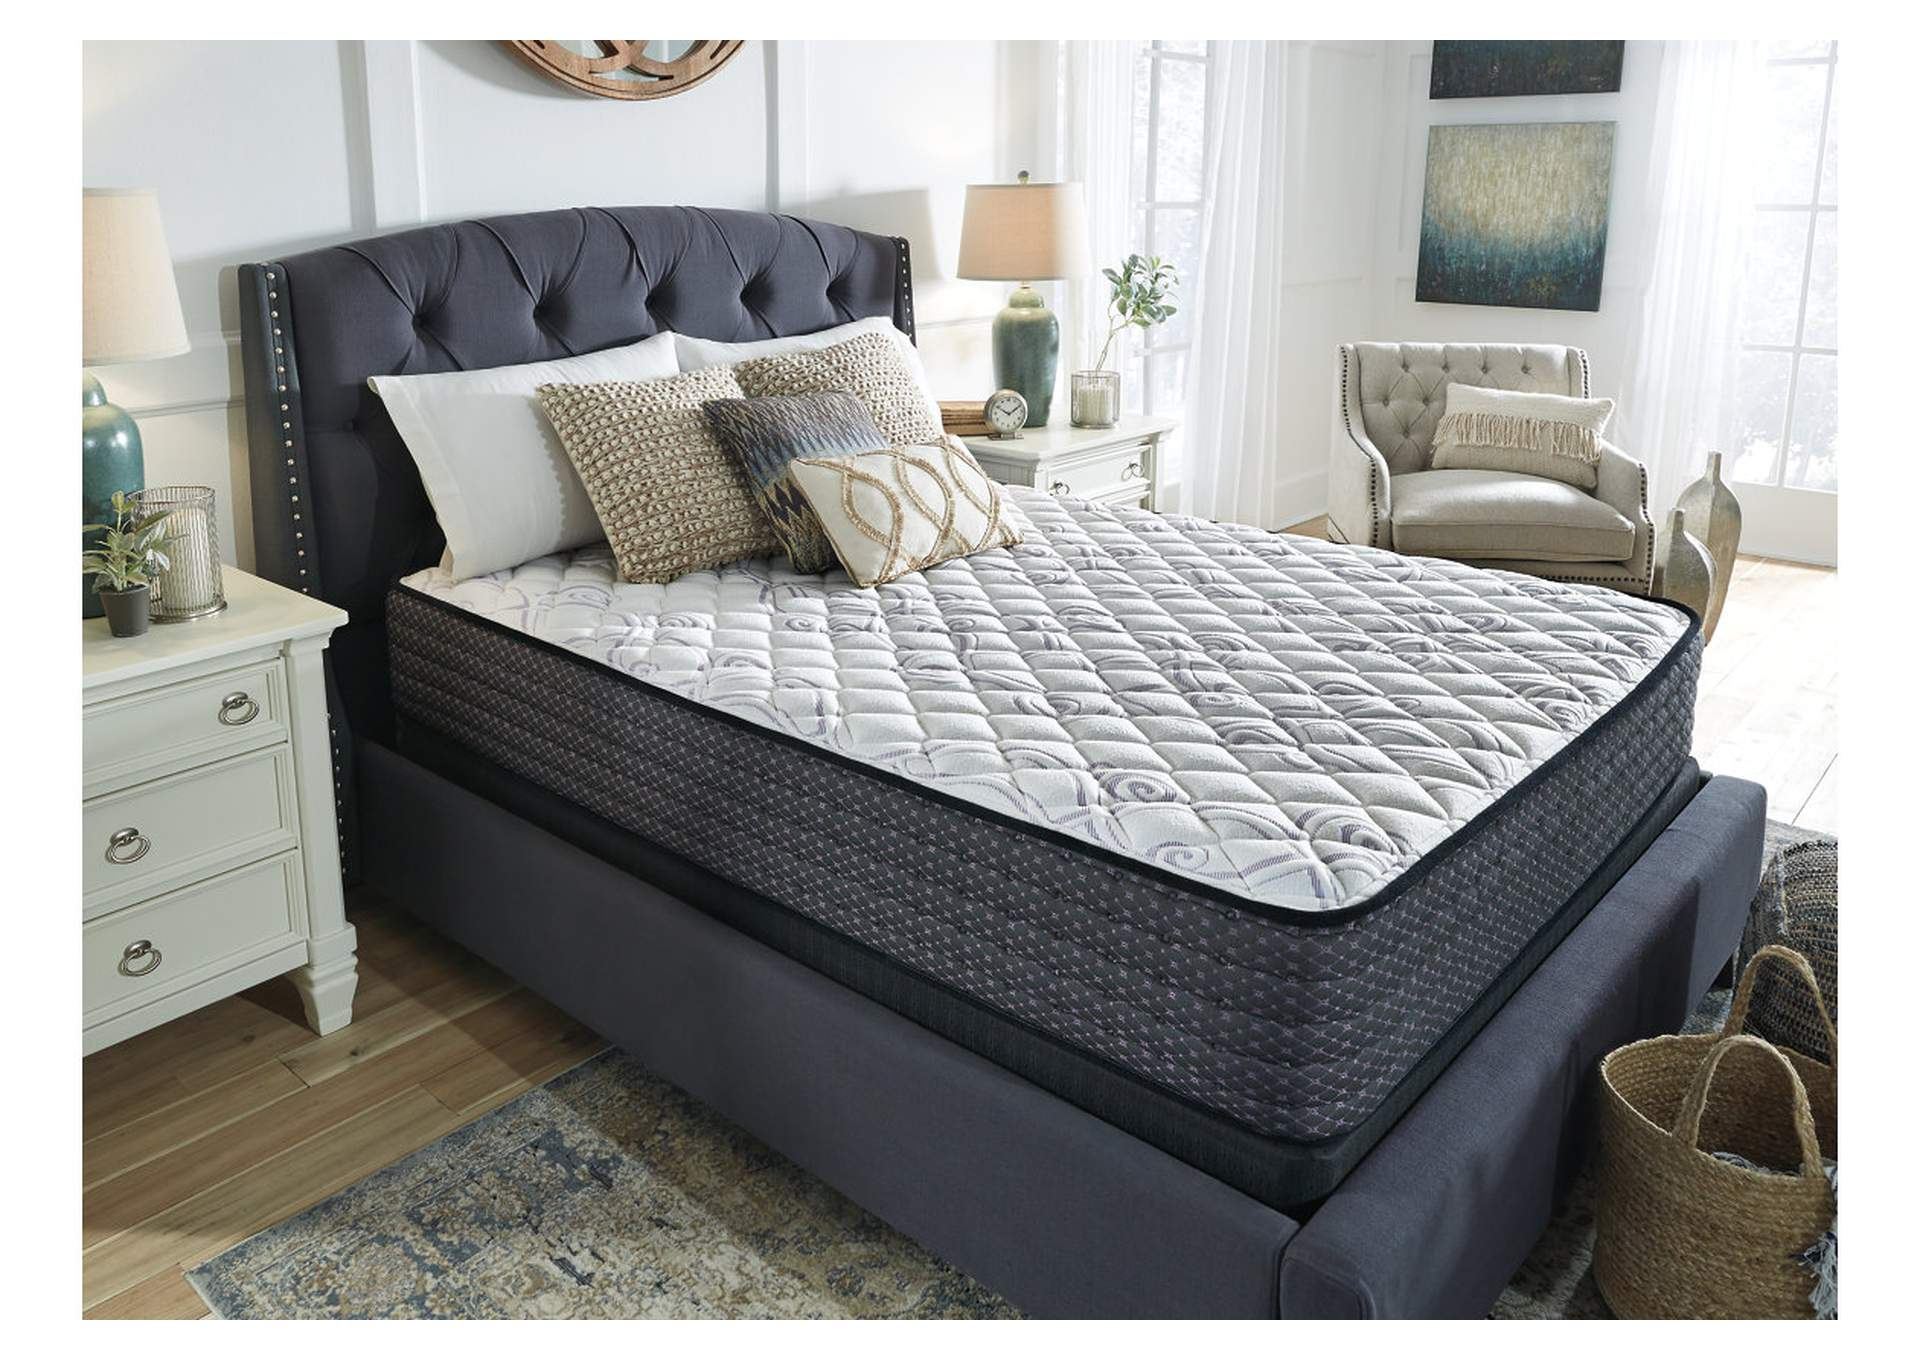 Limited Edition Firm Twin Mattress,Sierra Sleep by Ashley